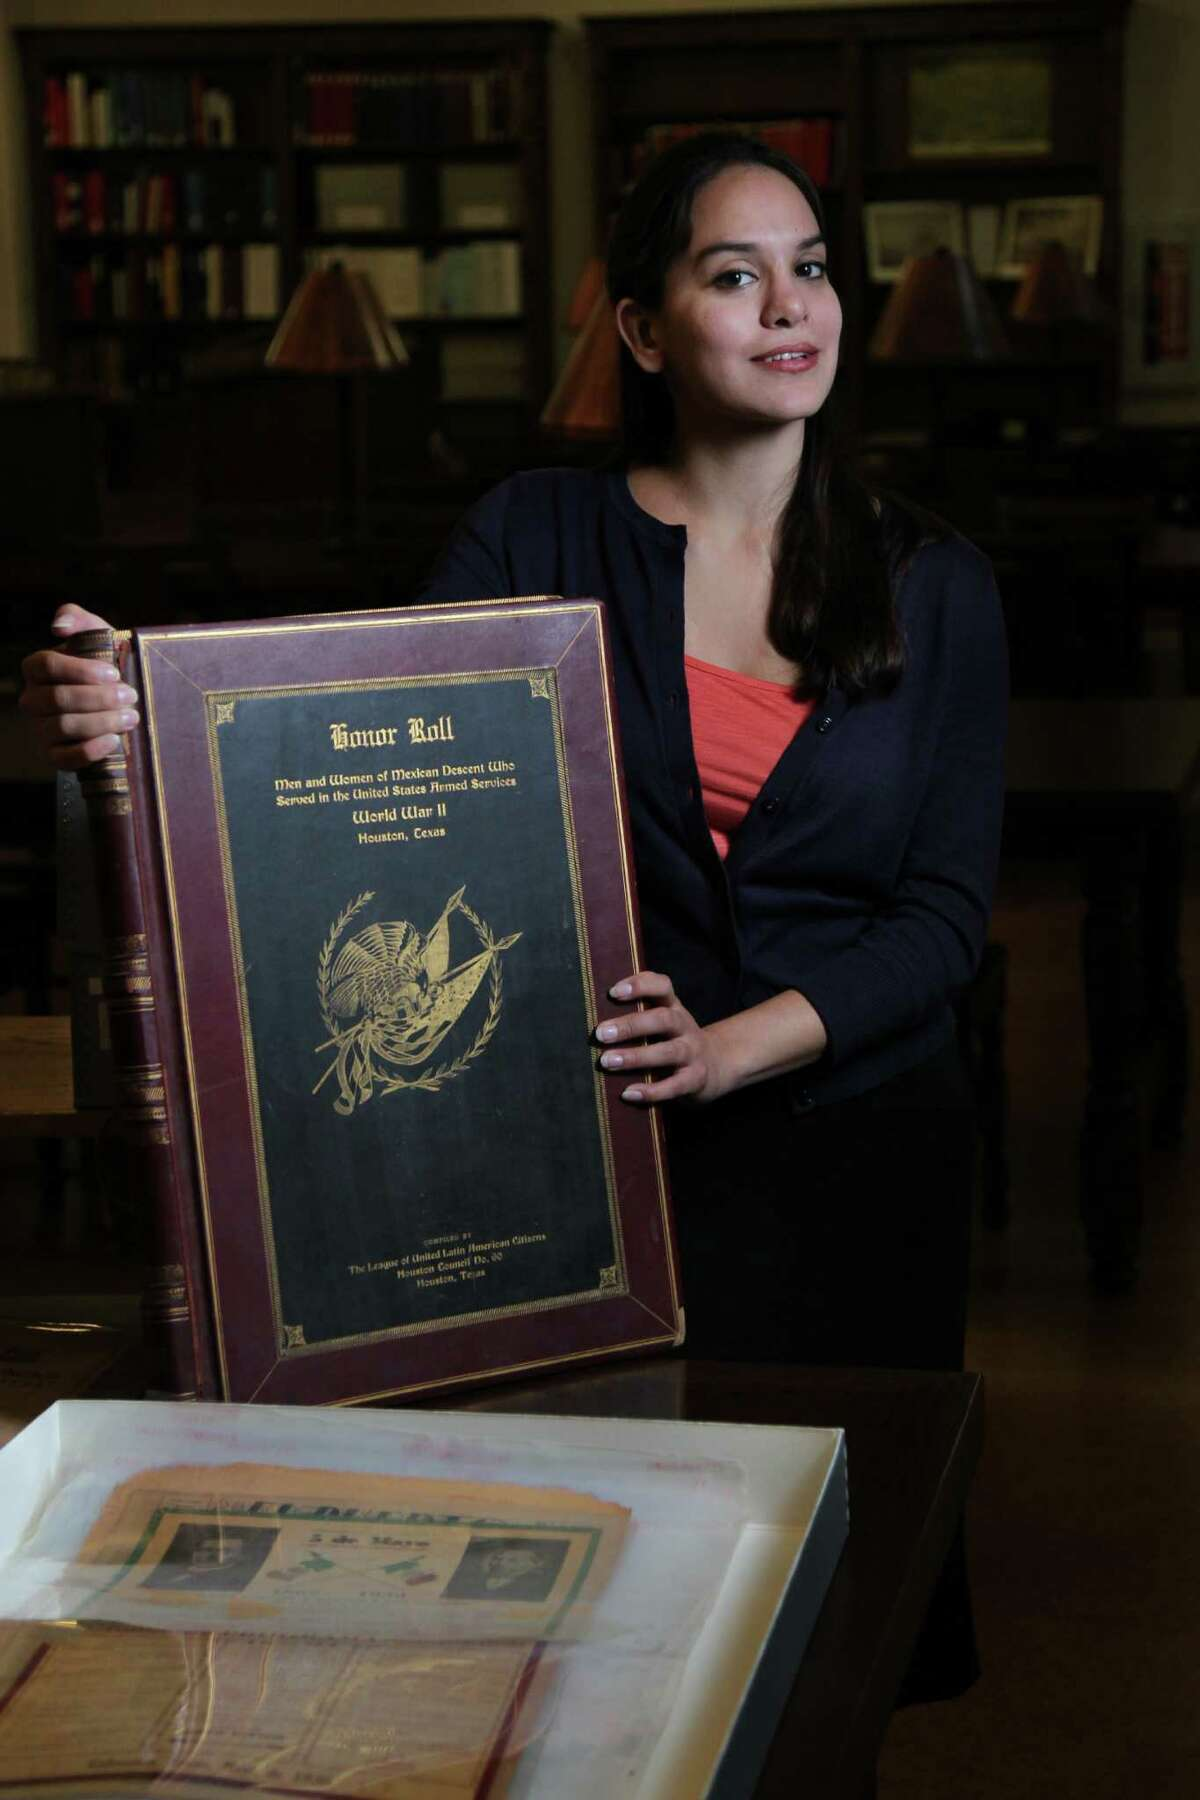 Mikaela Garza Selley, a Houston Public Library archivist whose duty is to oversee Hispanic materials, was excited to discover a leather-bound honor roll of Hispanic World War II veterans in the archives.